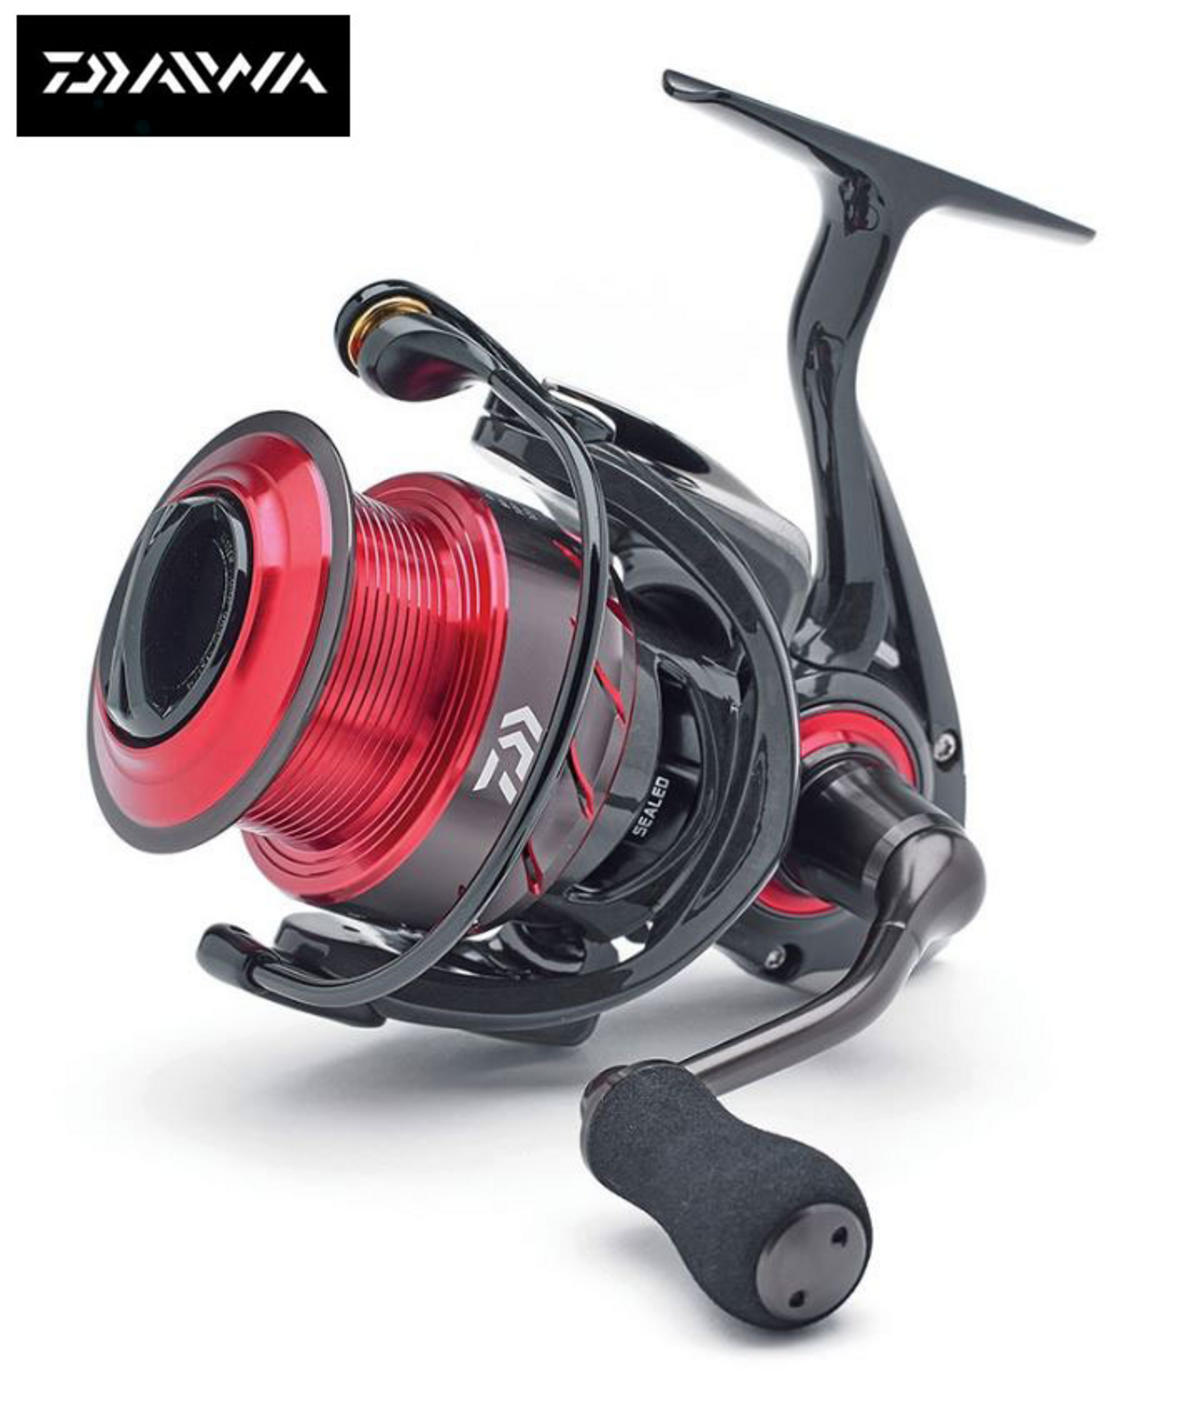 Ex Display Daiwa 16 TDX Match 2506 QDA Fishing Reel  Model No.16TDX2506A